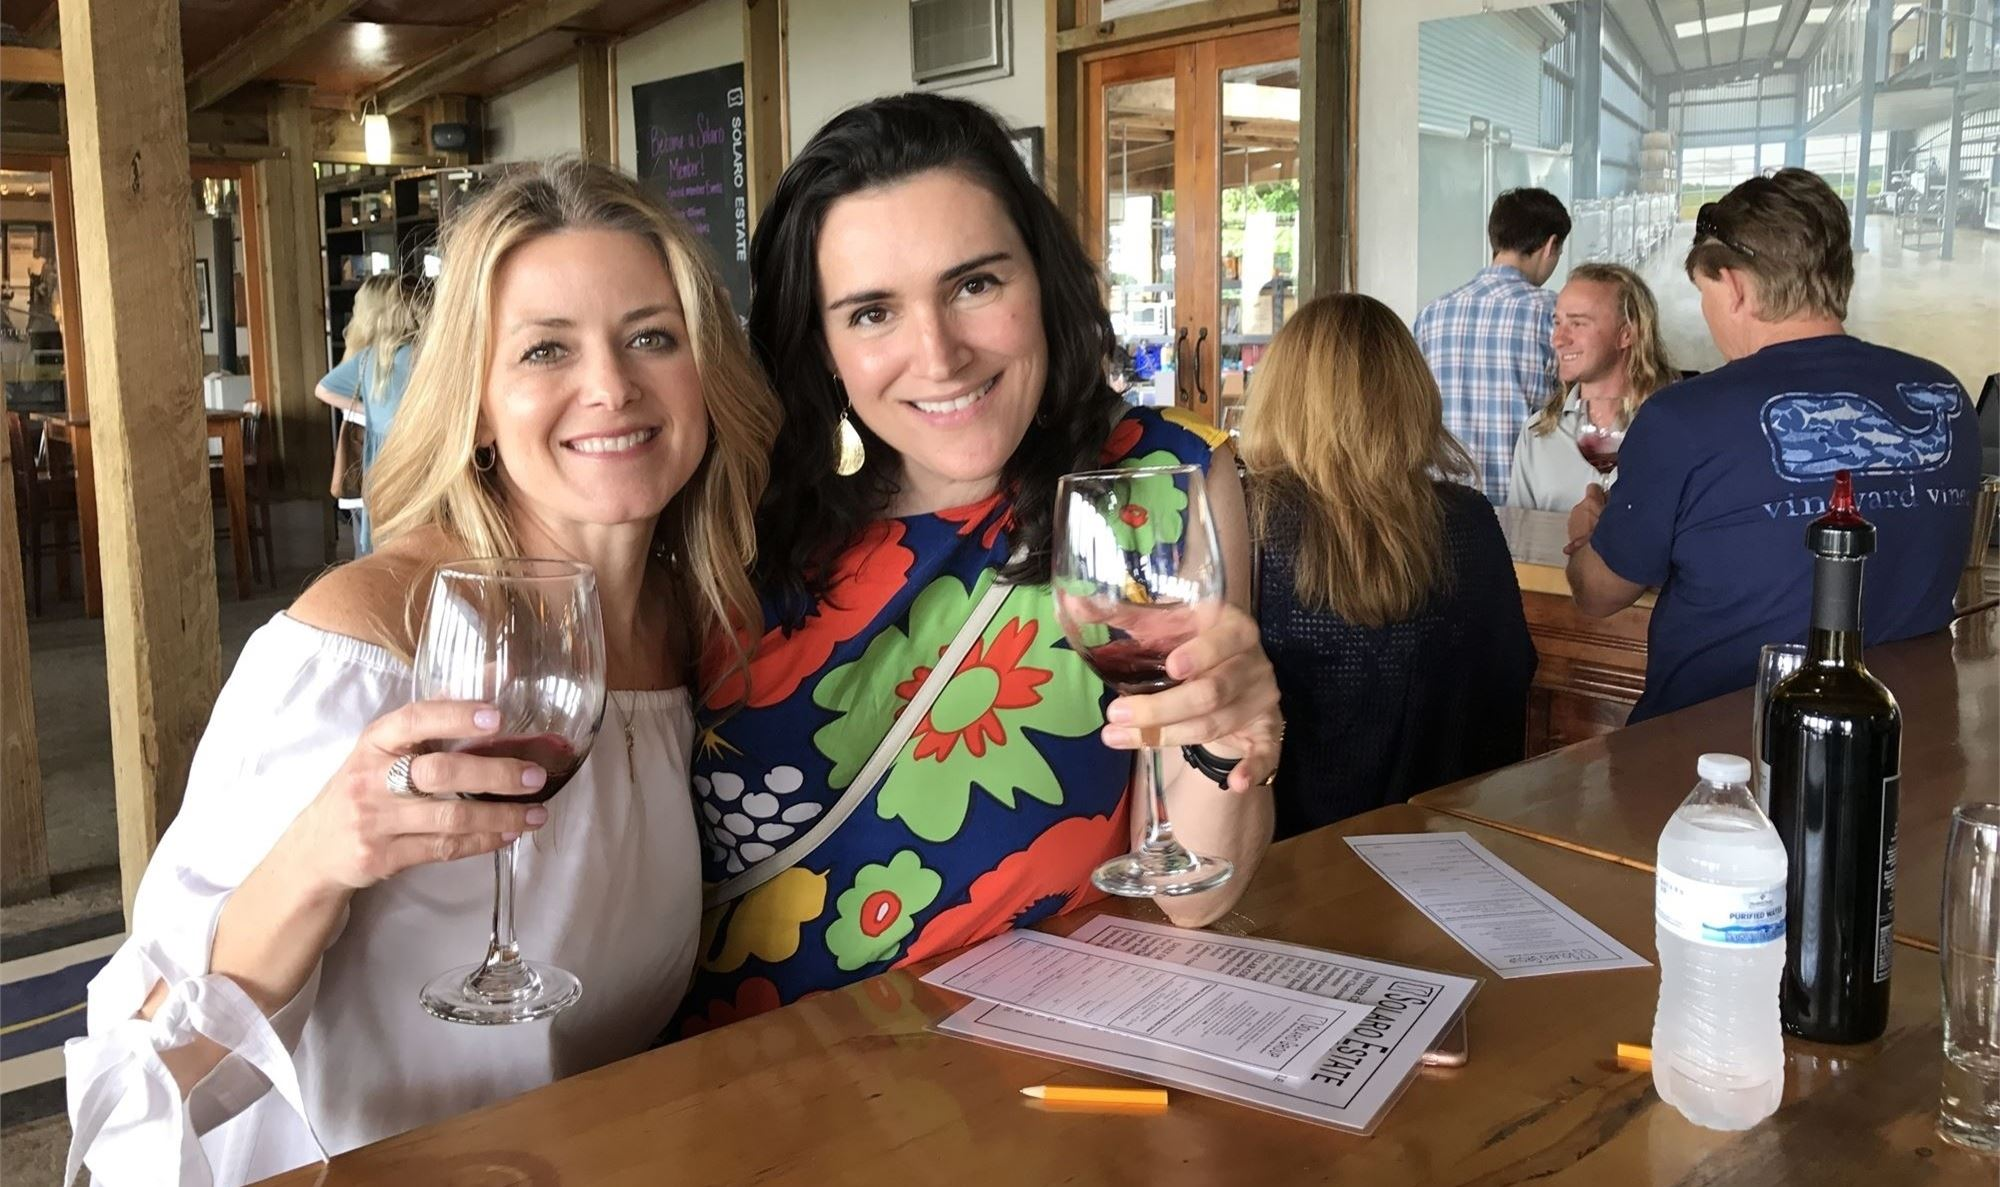 Two women holding glasses of red wine in a wine tasting room